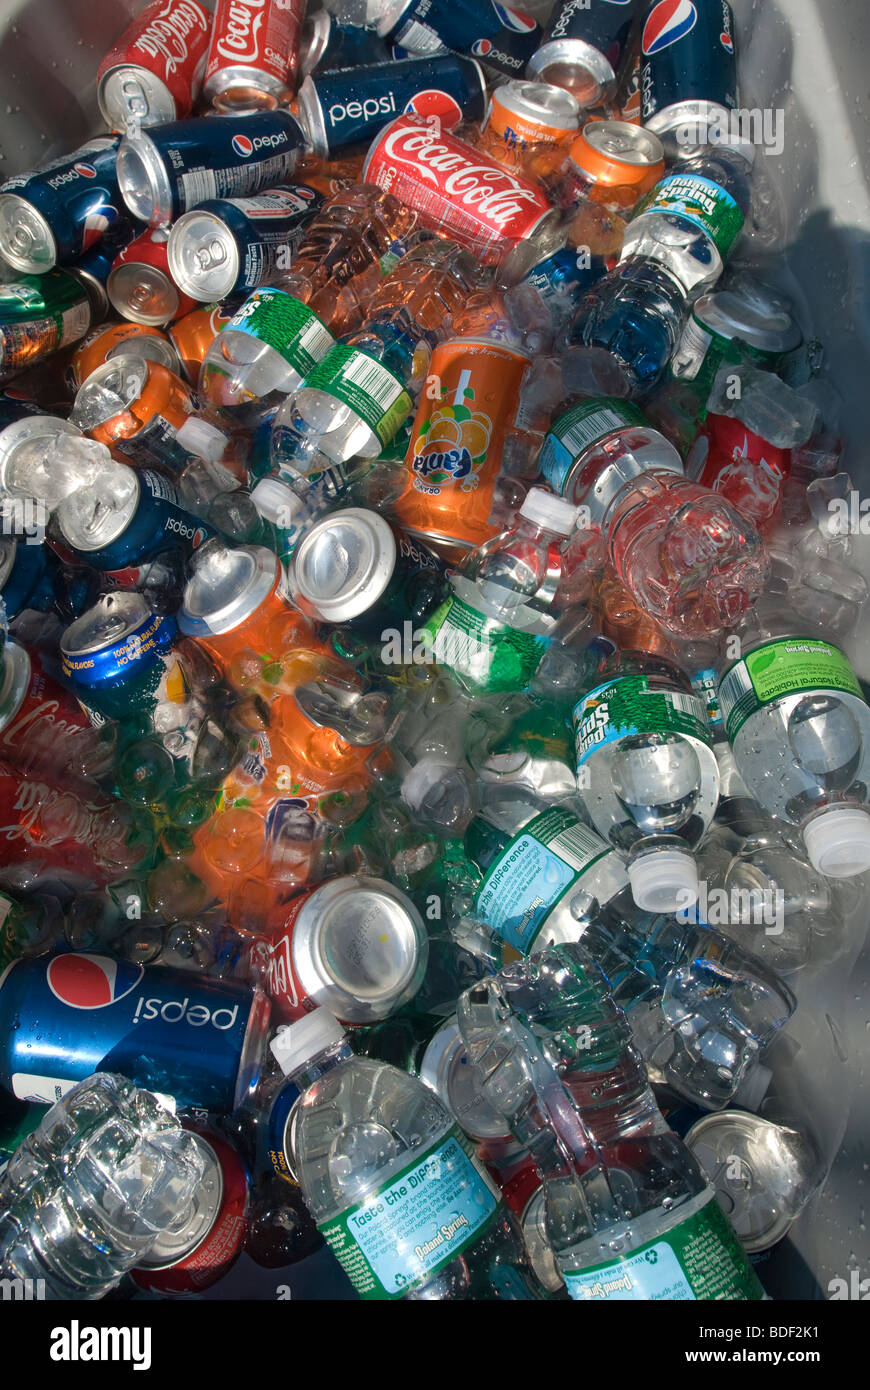 Cans of ice cold soda and water in a container of ice are sold by an entrepreneur at a street fair in New York - Stock Image